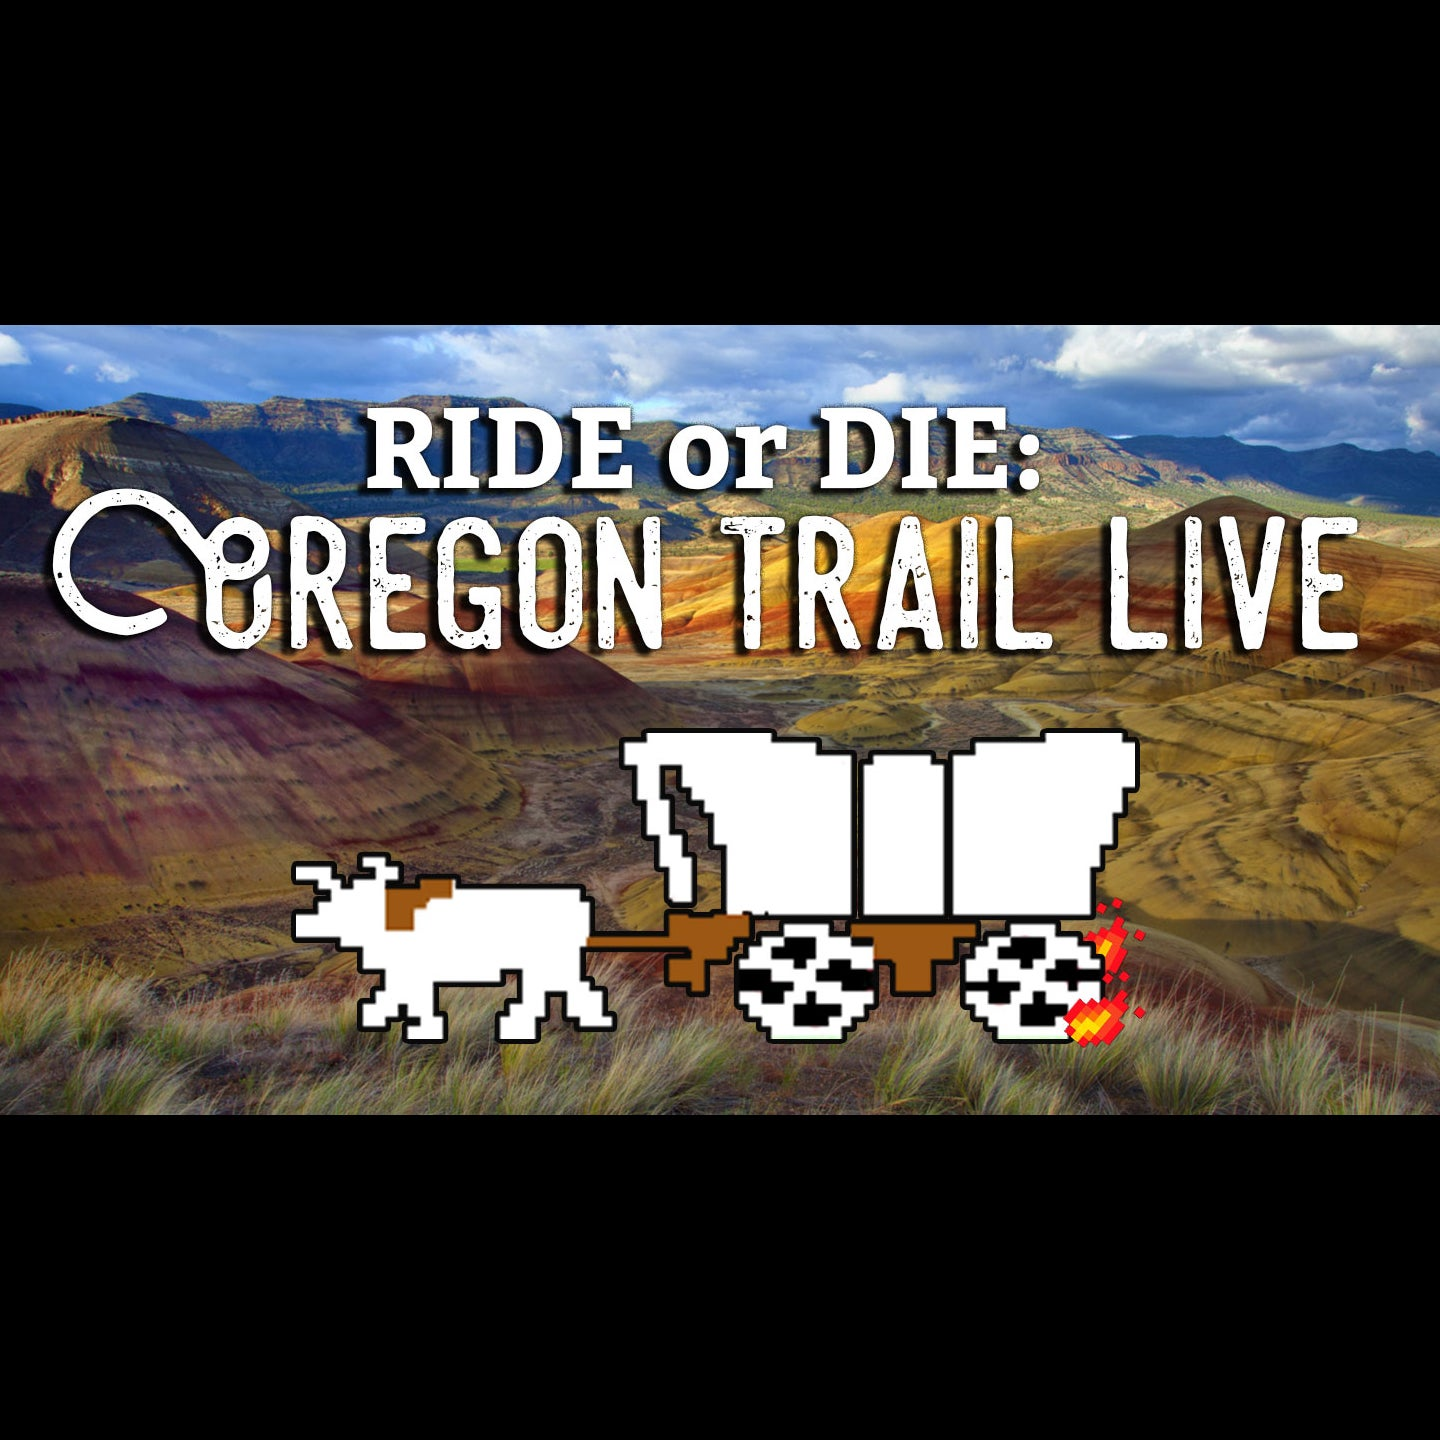 Nerdy Night Out: Ride or Die: Oregon Trail Live